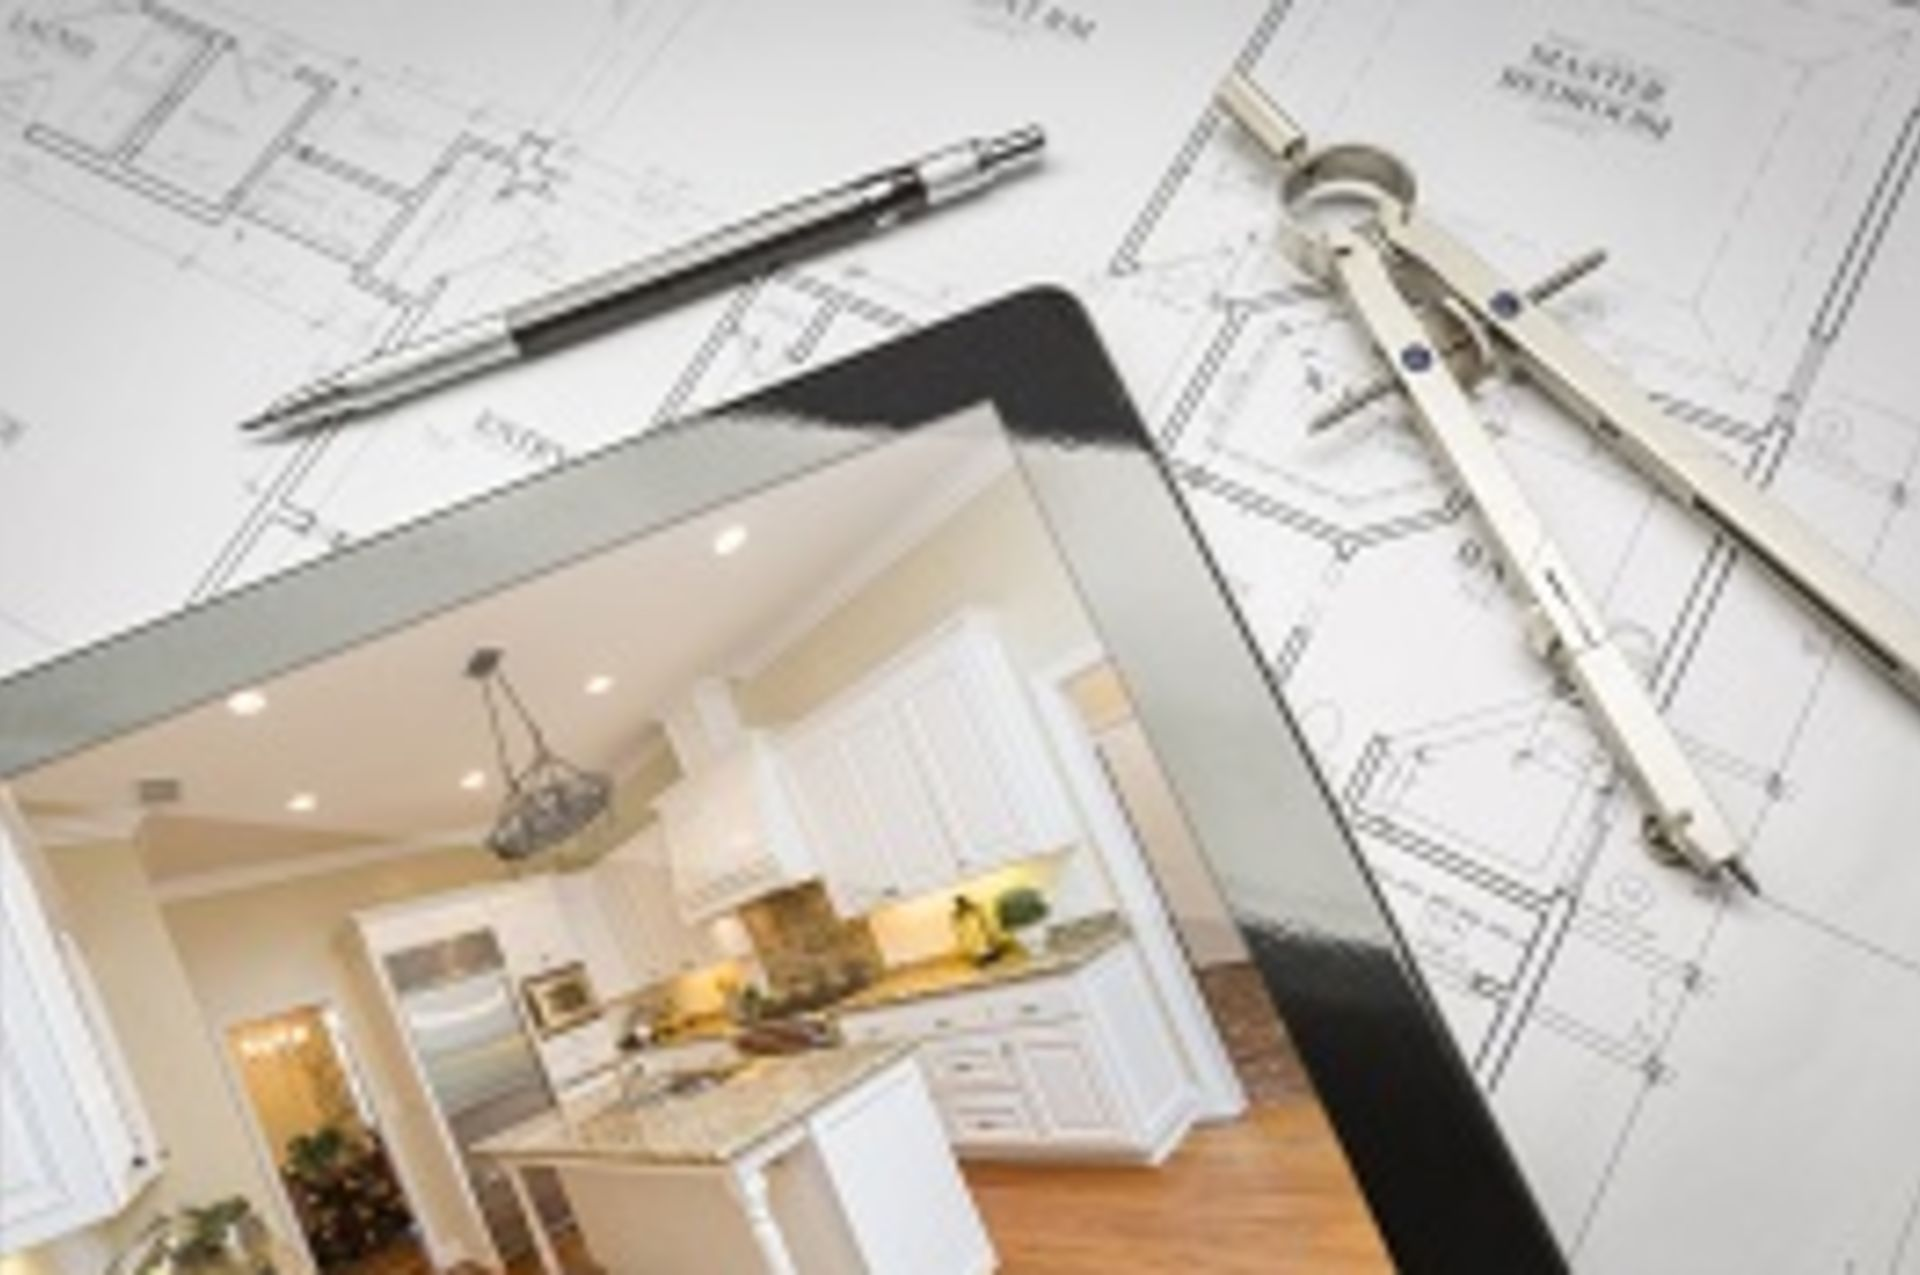 Homeowners Back on the Remodeling Bandwagon